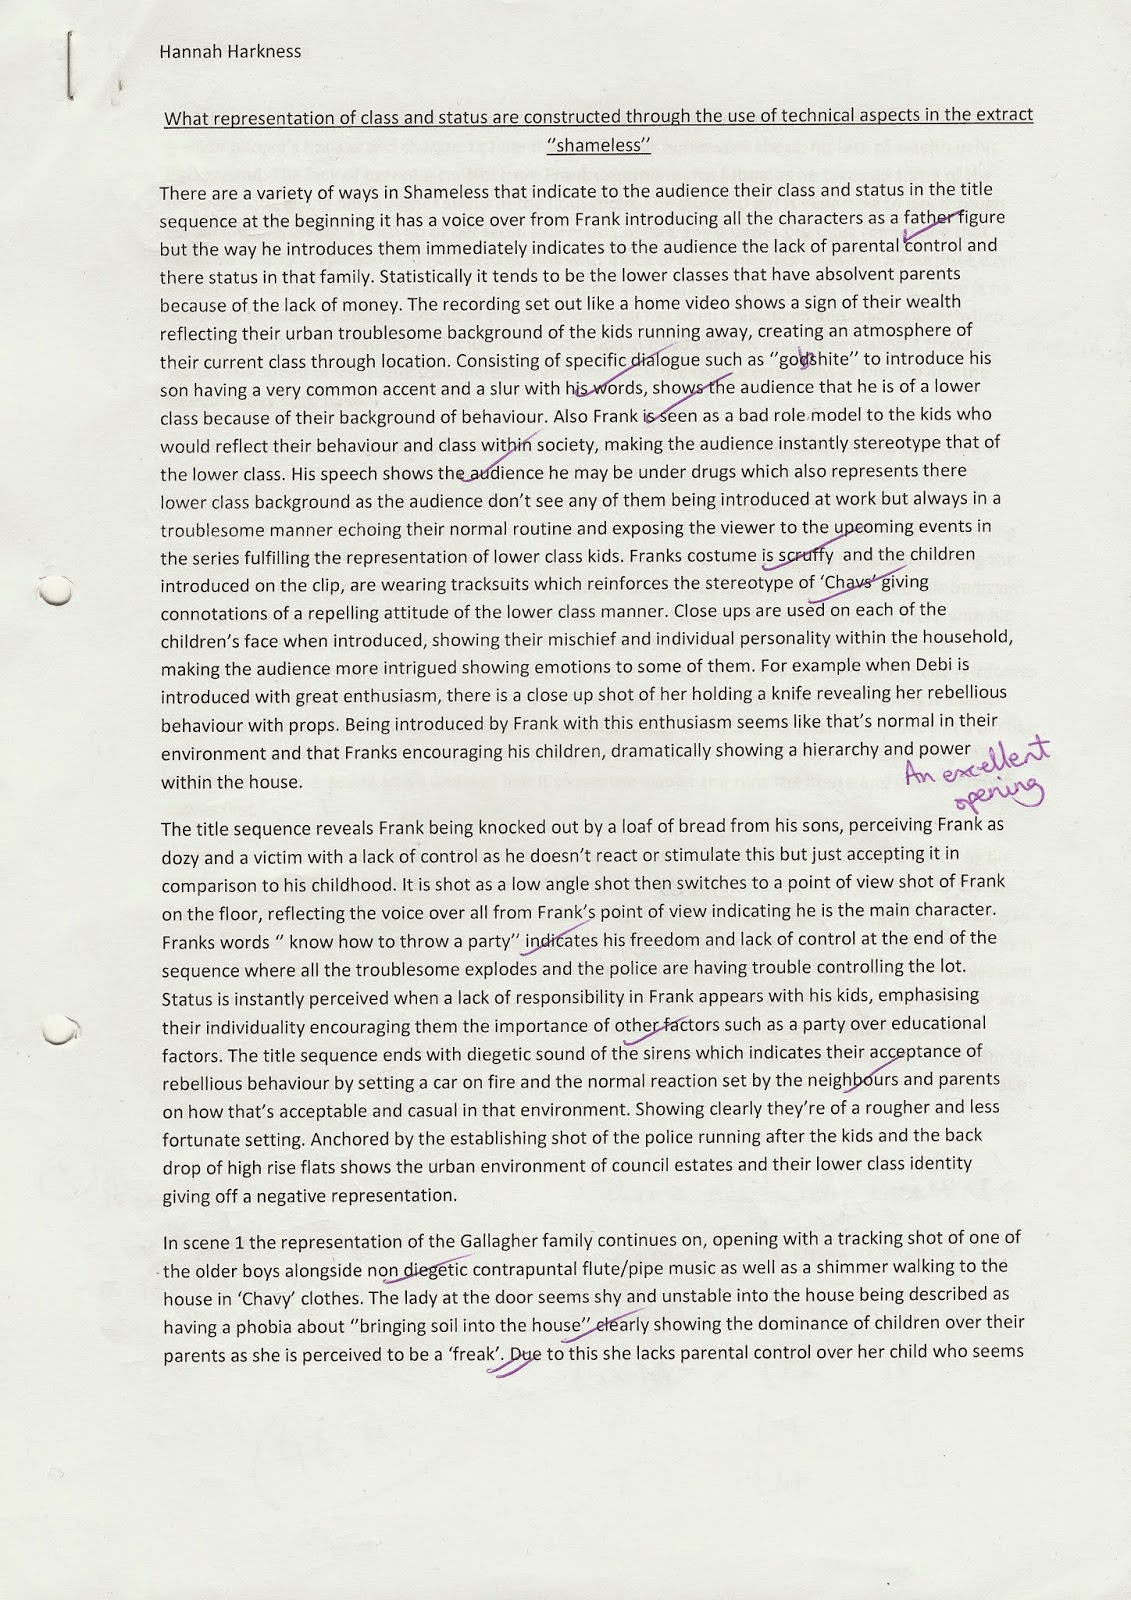 essays portfolio i also have a hand written essay similar but based on another media question that has been analysed by myself in order for improvement marked by my second